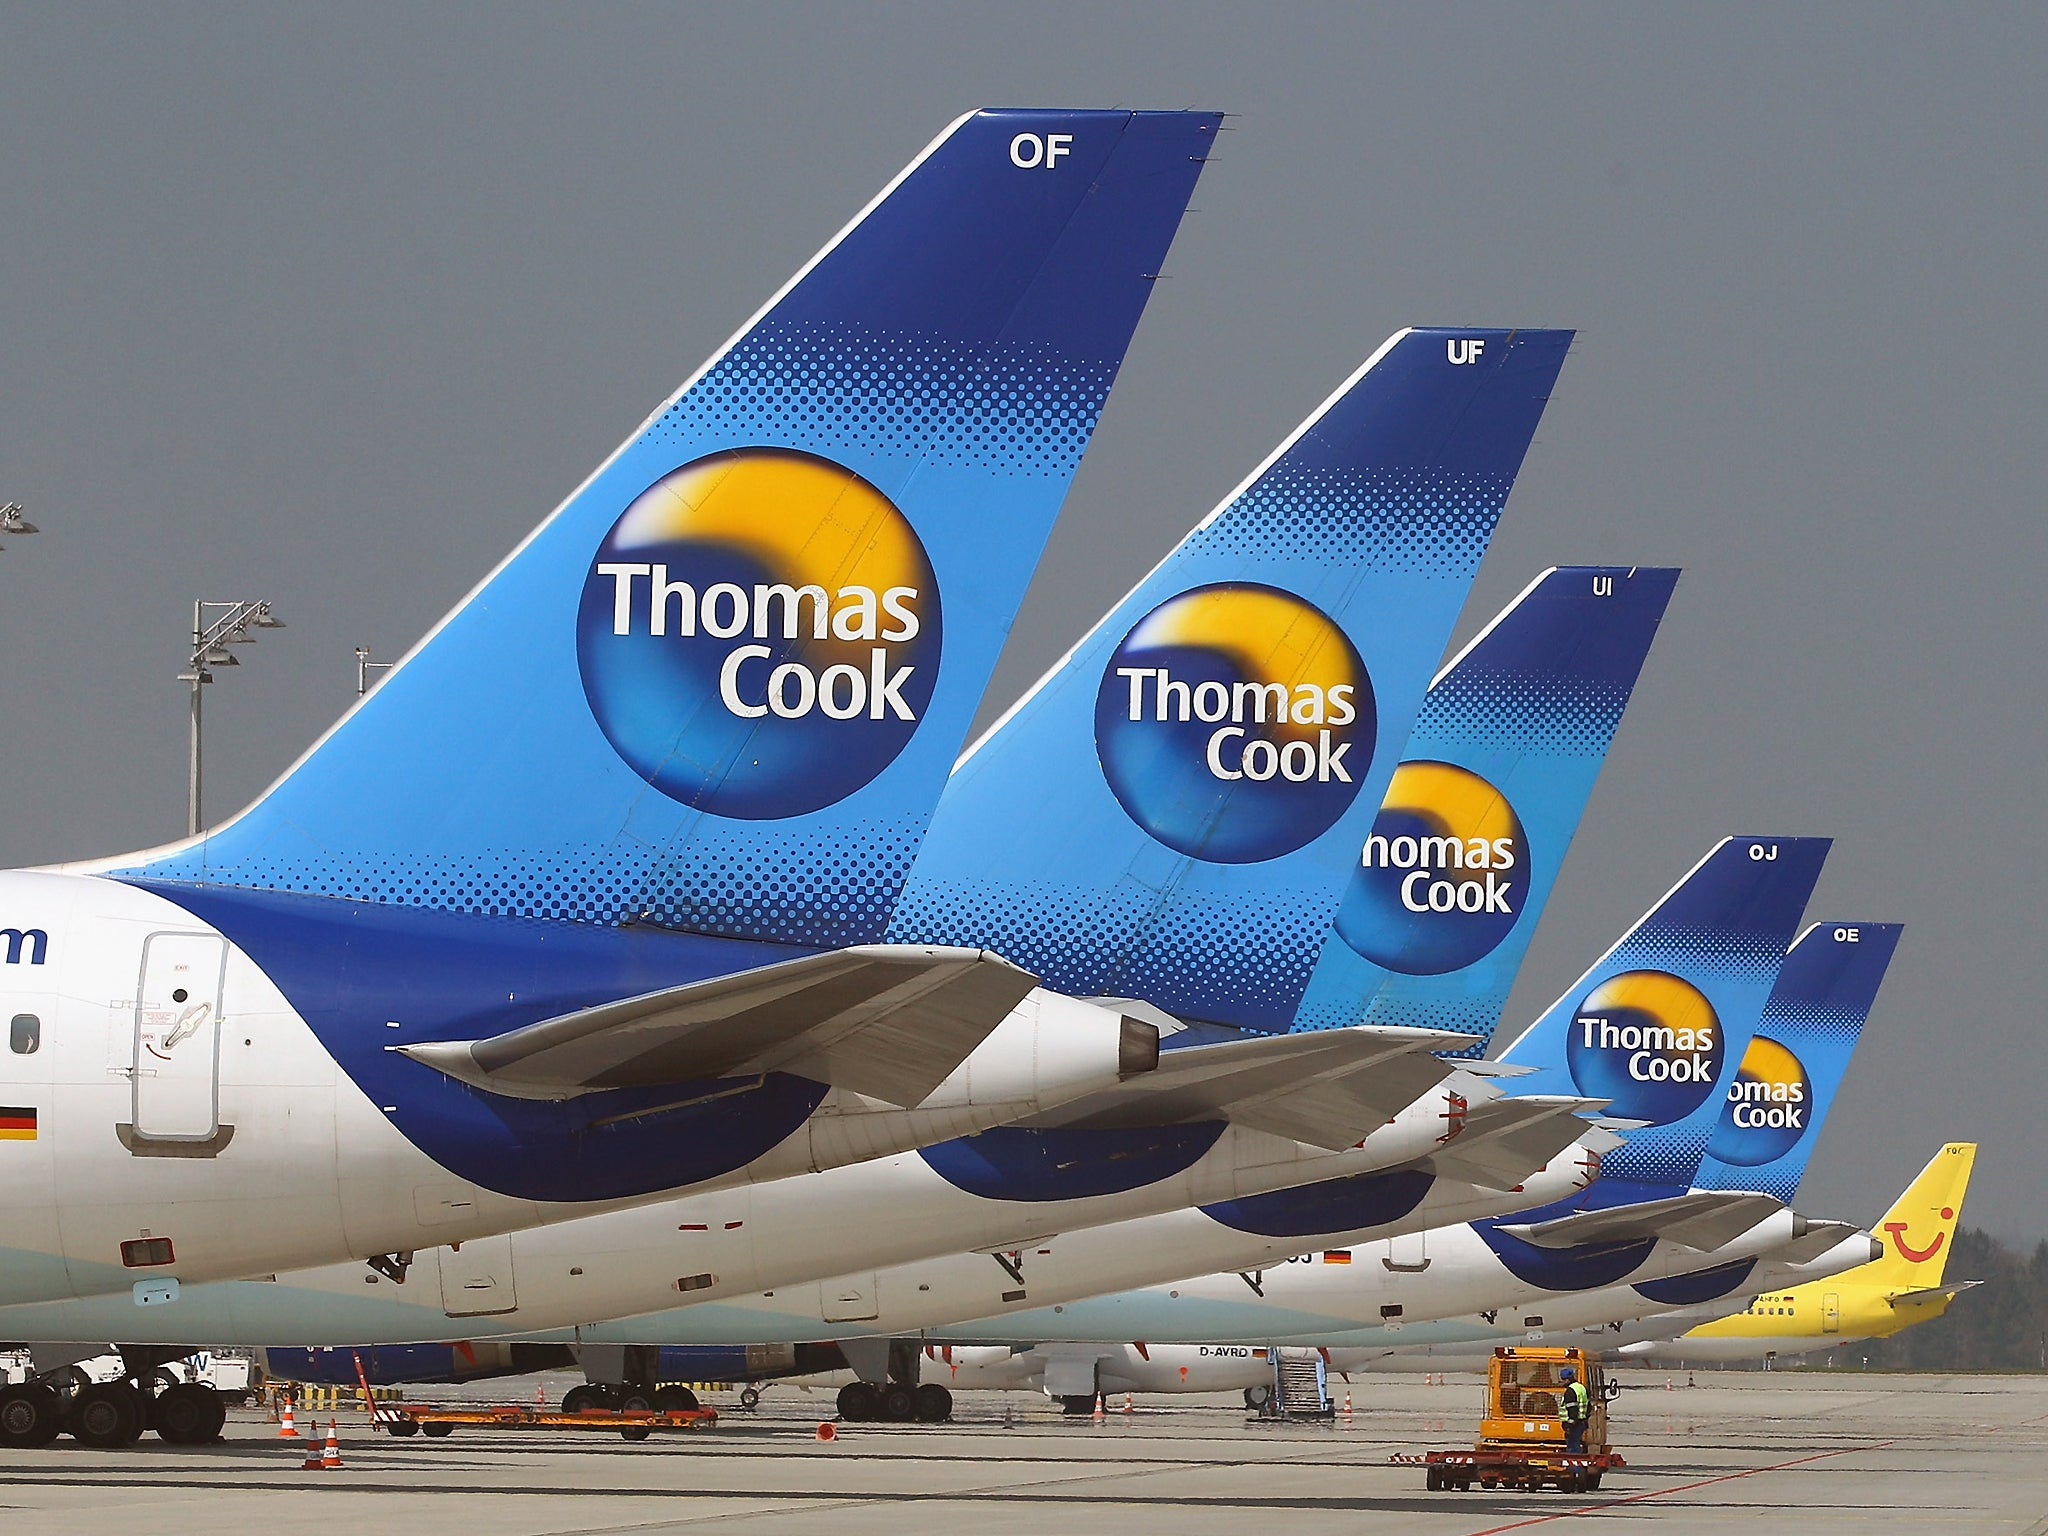 thomas cook shares tumble by 18% as terror fears hit booking